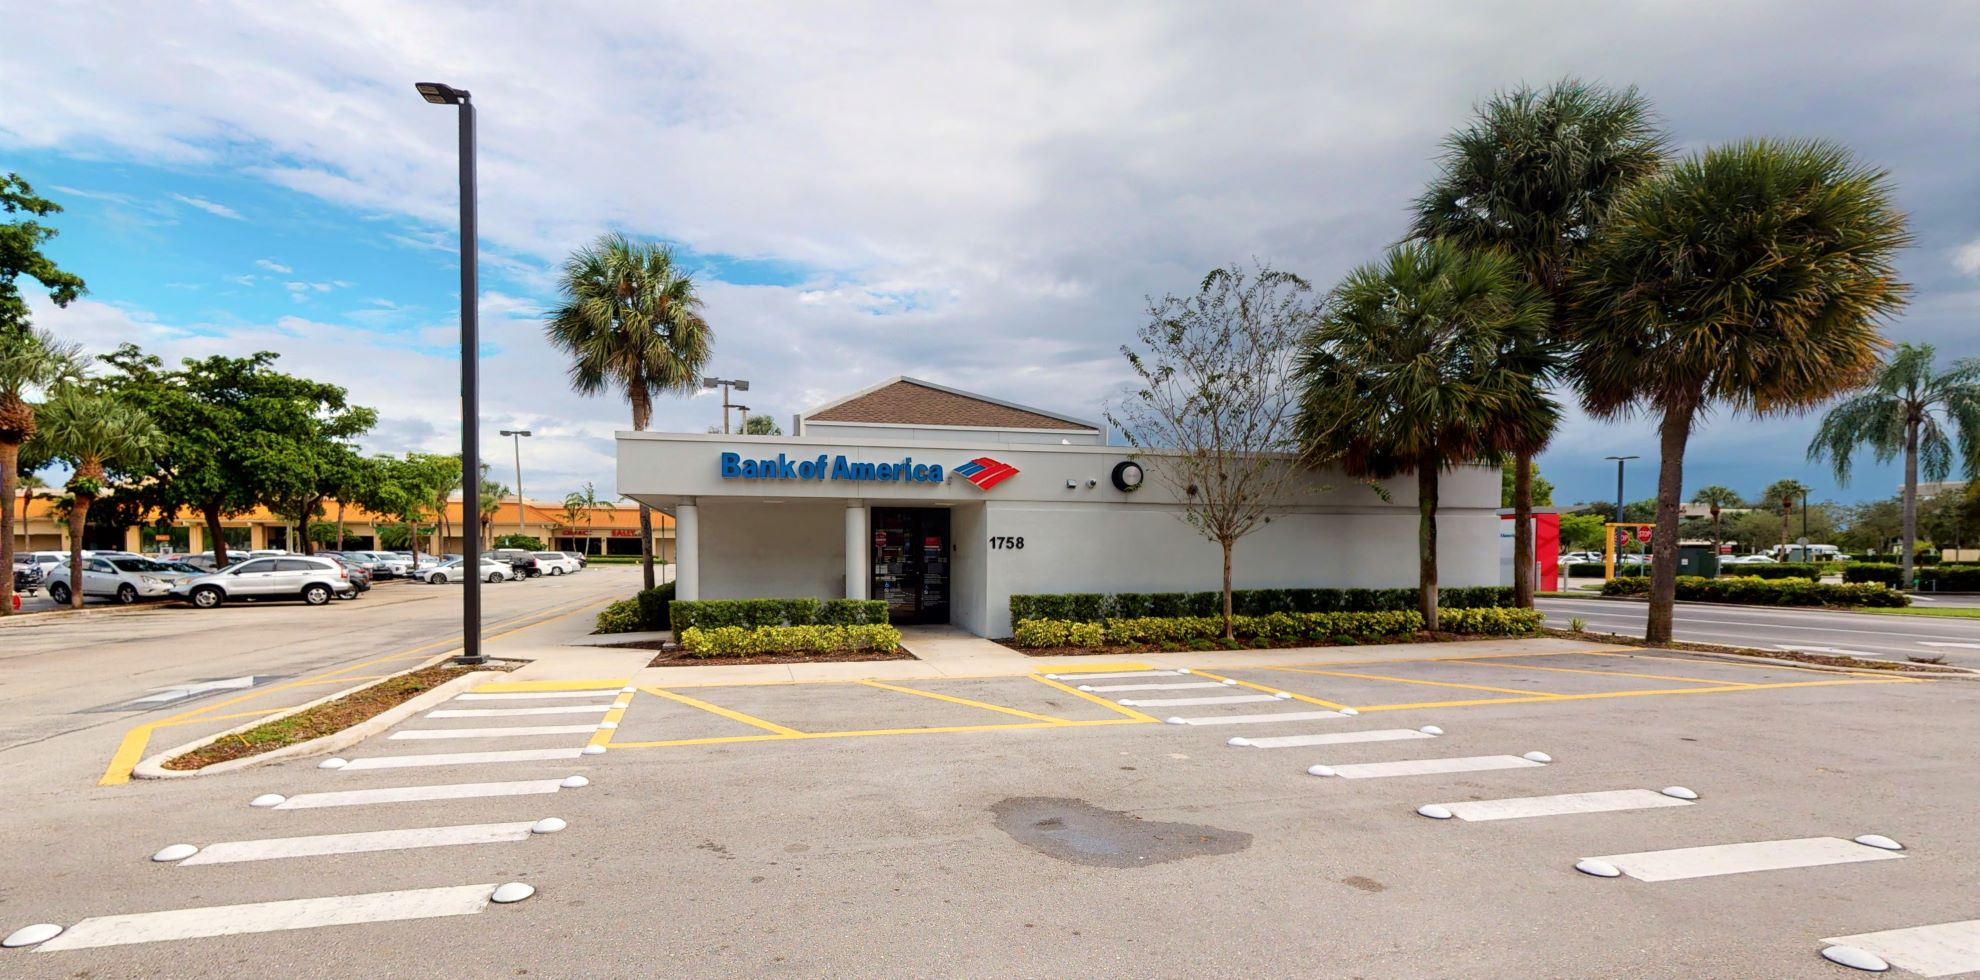 Bank of America financial center with drive-thru ATM and teller   1758 S Congress Ave, Palm Springs, FL 33461